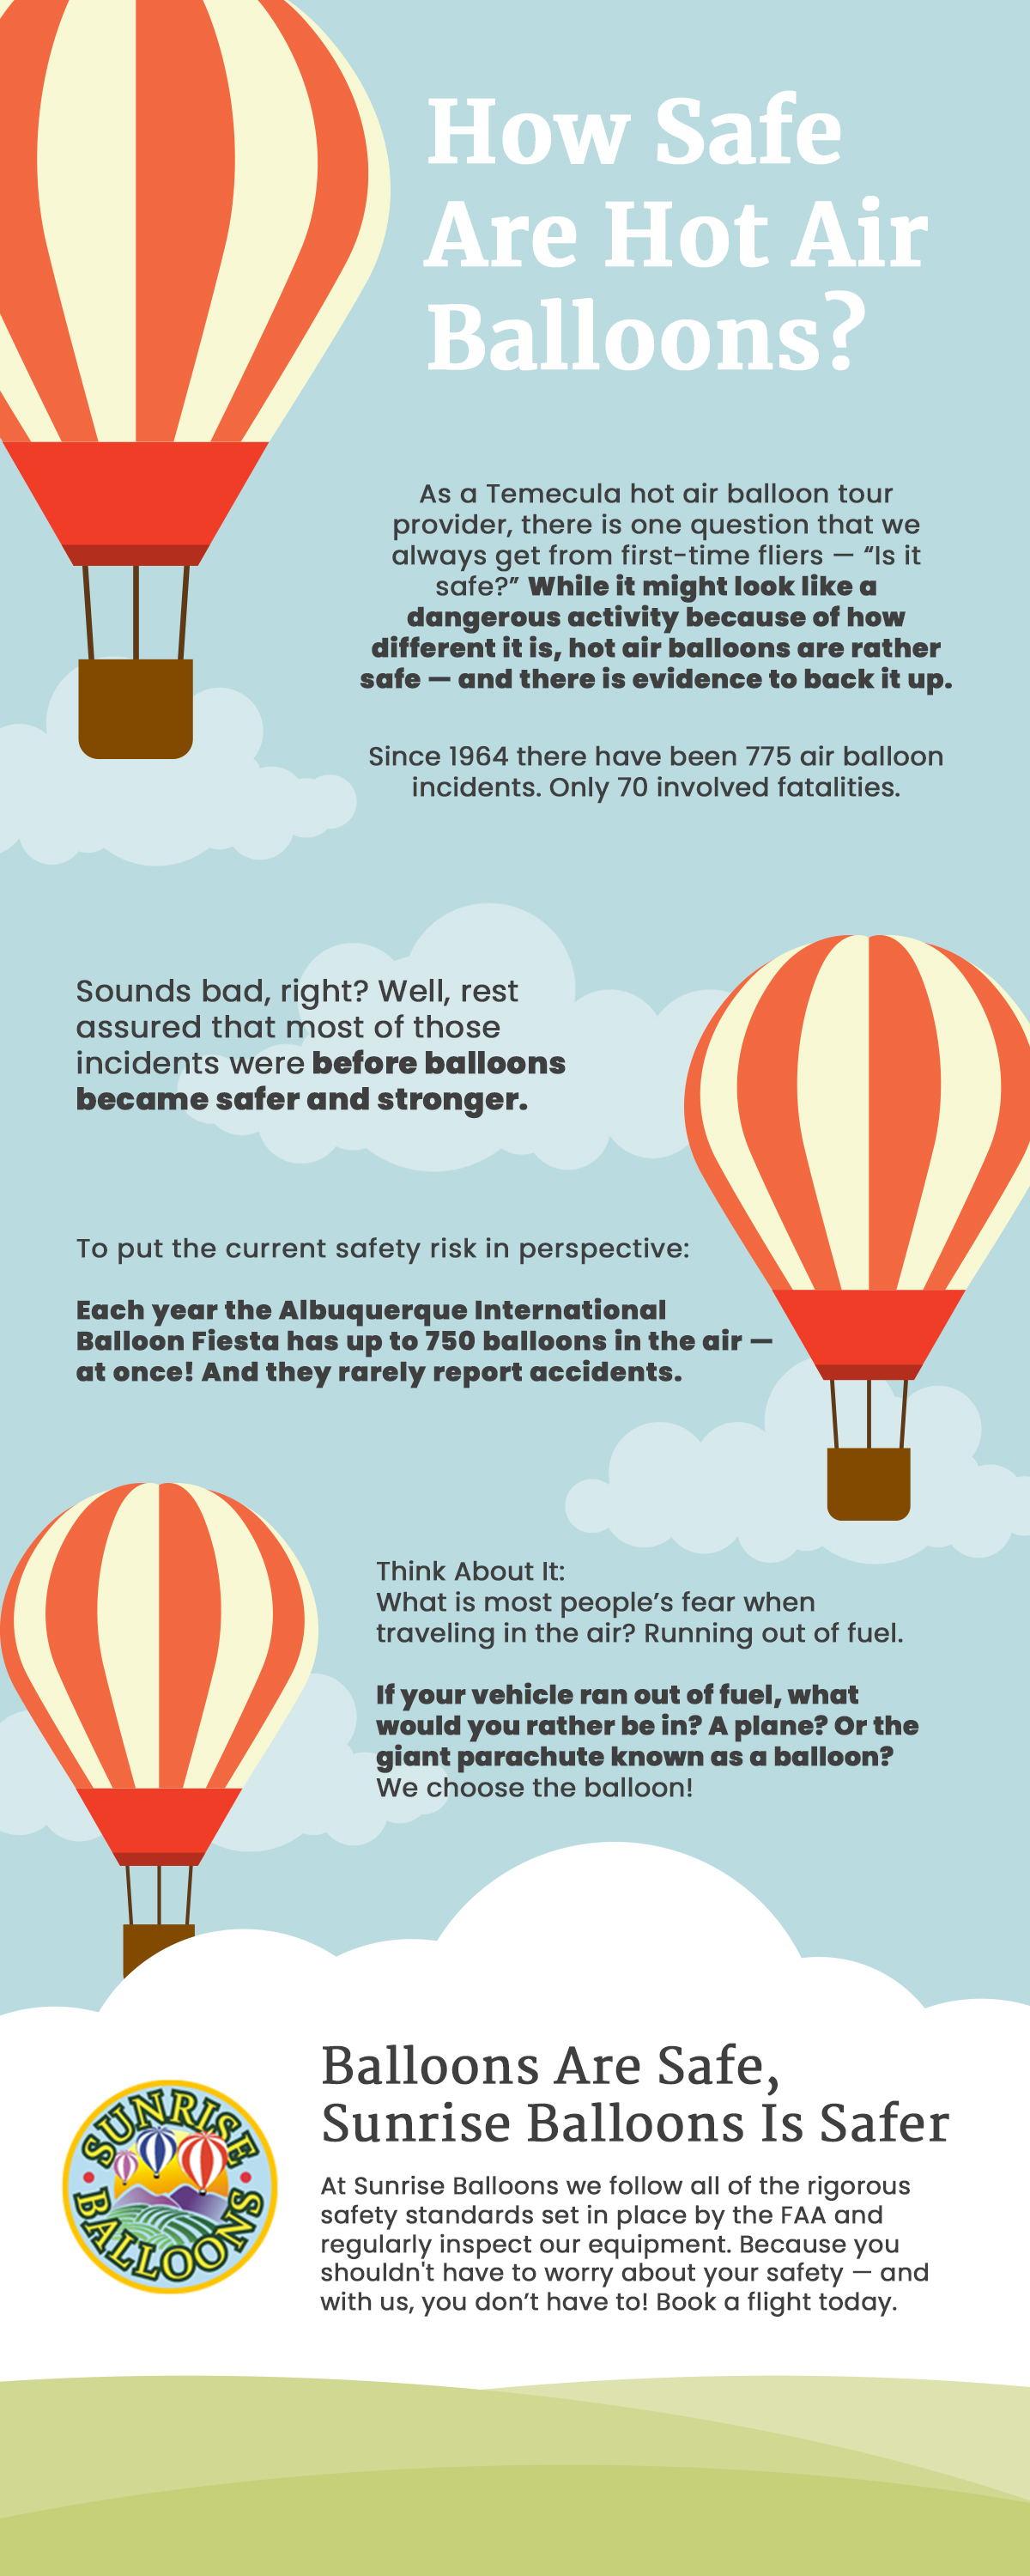 How Safe Are Hot Air Balloons